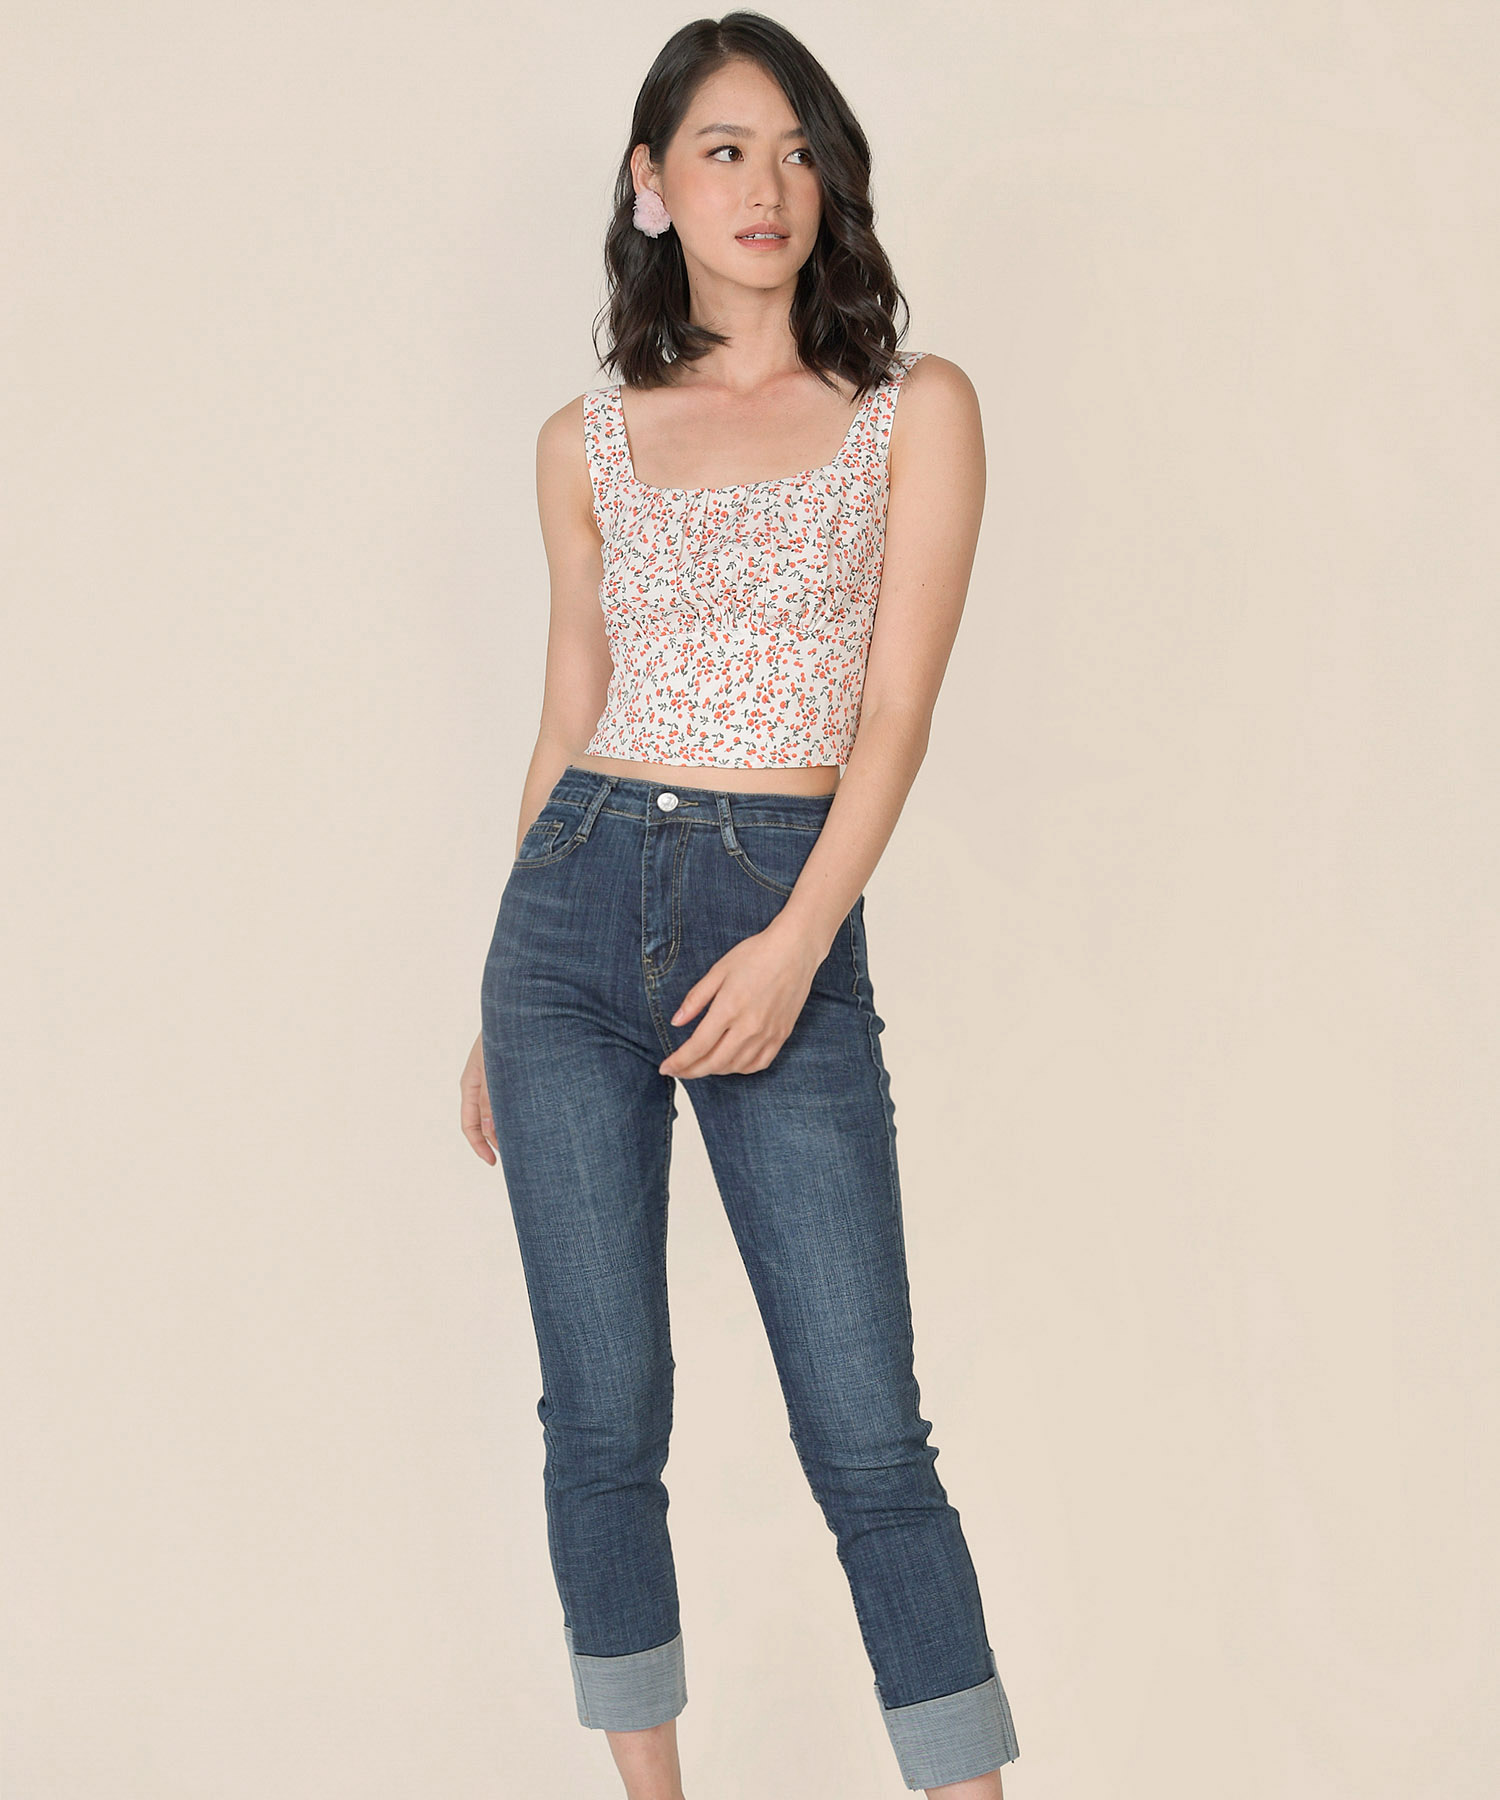 nectar-floral-ruched-top-white-1